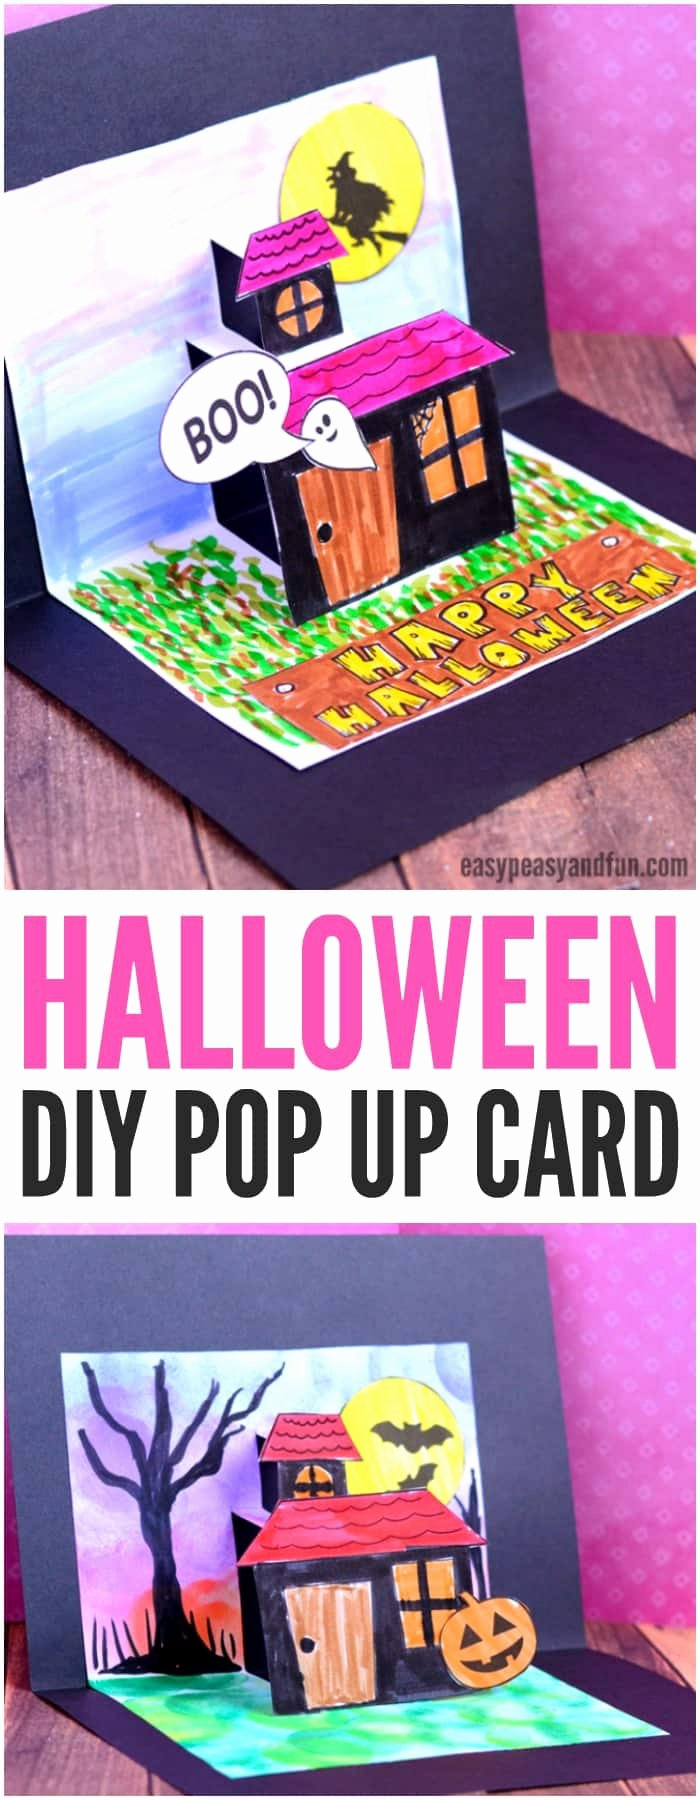 Pop Up Card Template Awesome Halloween Pop Up Card Template Easy Peasy and Fun